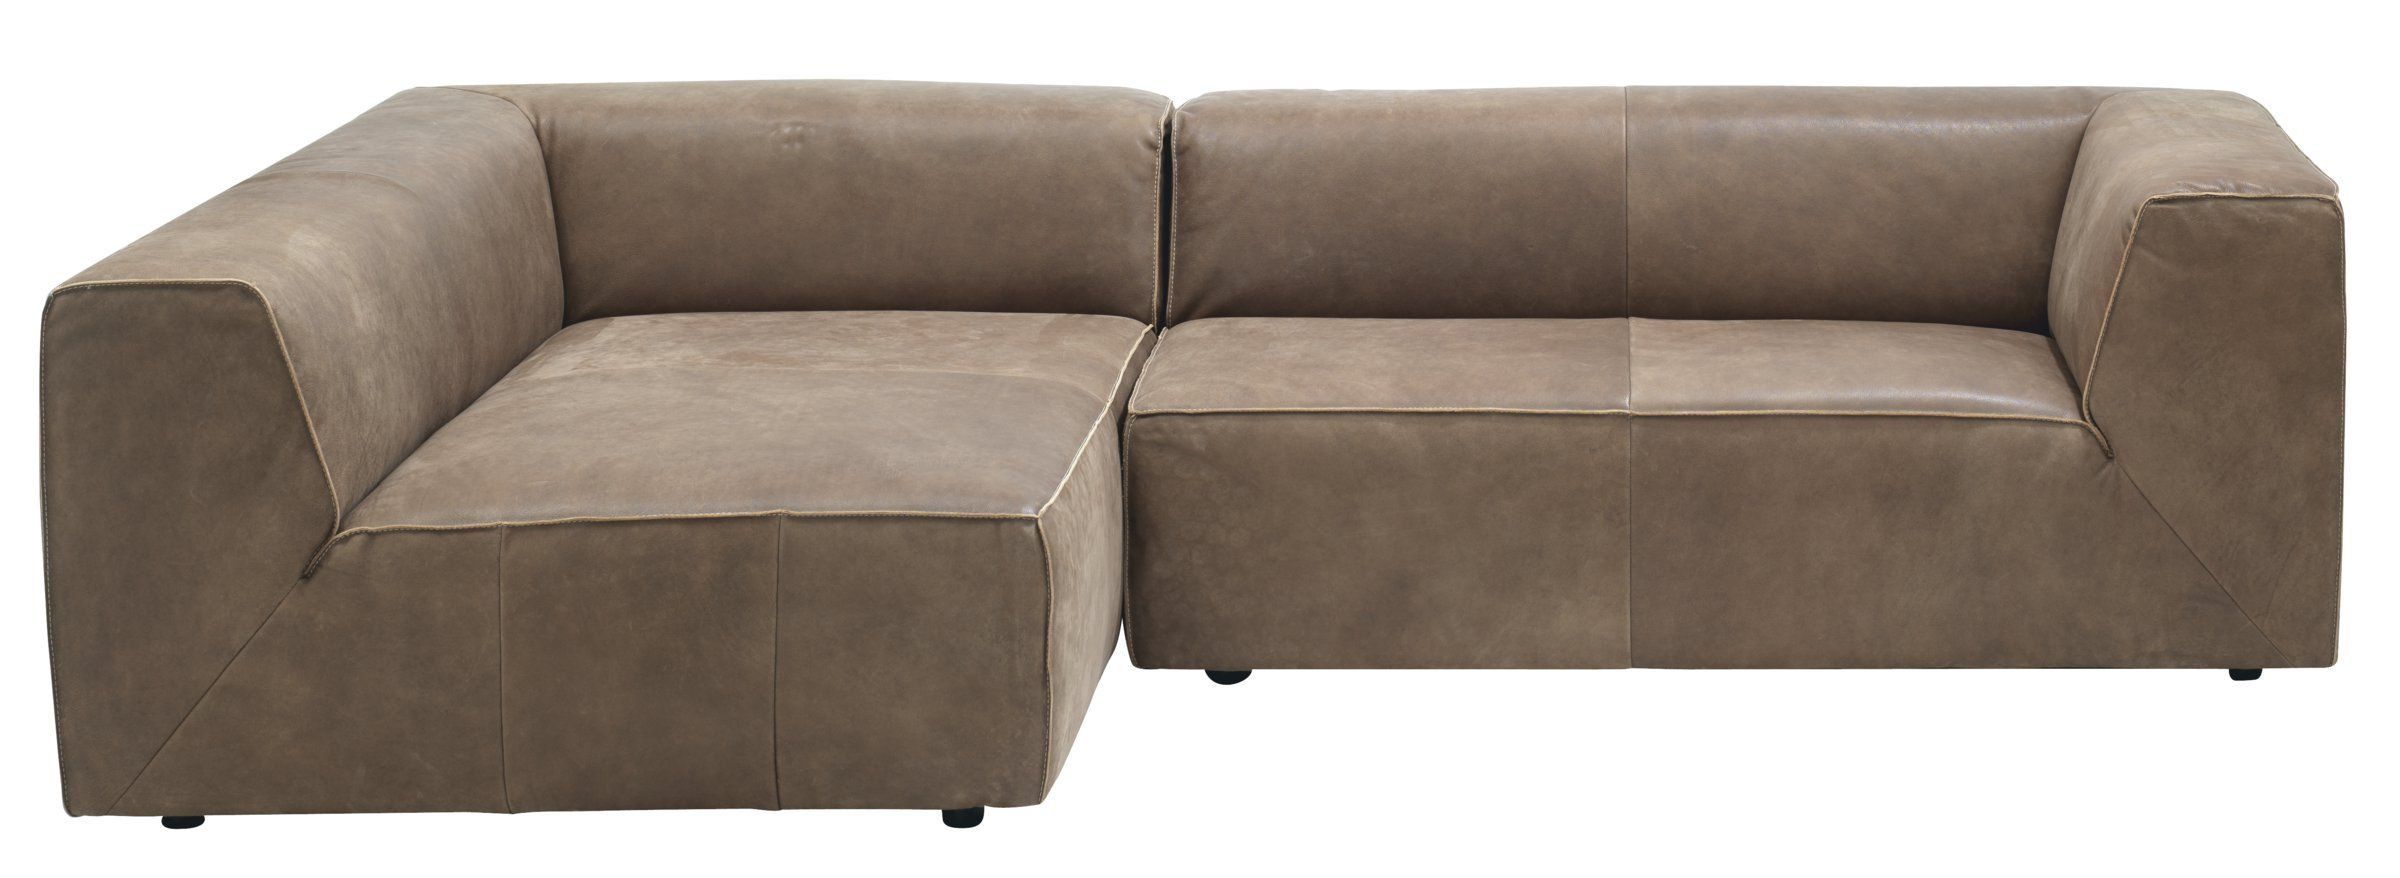 Willow And Hall Sofa Reviews Chesterfield Leather Grey Micasa Bed Review Home Co